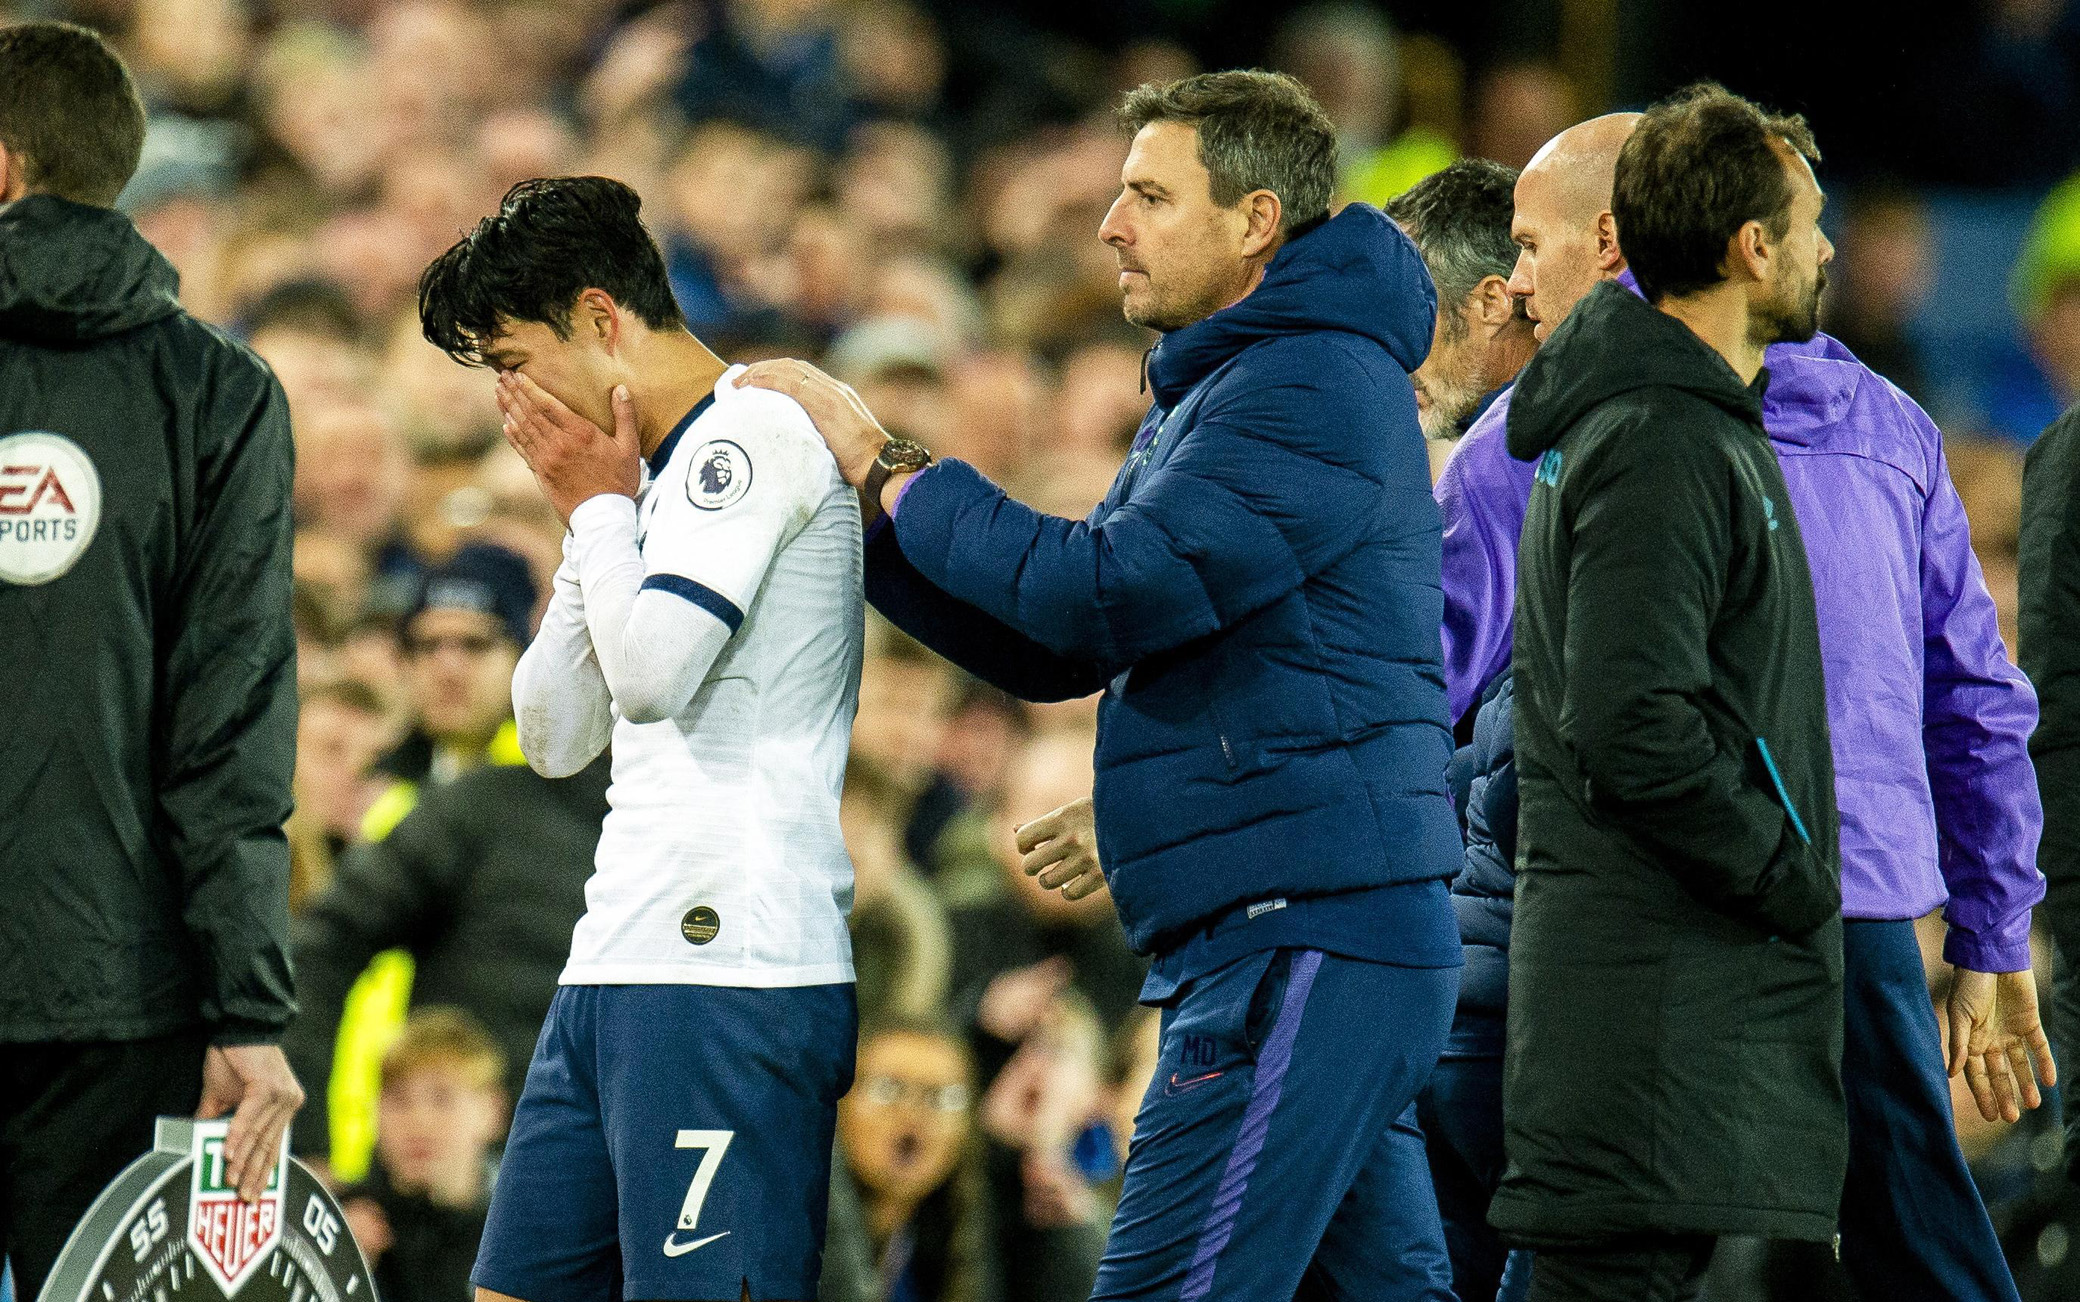 epa07970274 Tottenham Hotspur's Son Heung-min (L) reacts after tackling Everton's Andre Gomes causing an injury to the Everton player during the English Premier League soccer match between Everton FC and Tottenham Hotspur at the Goodison Park in Liverpool, Britain, 03 November 2019.  EPA/PETER POWELL EDITORIAL USE ONLY. No use with unauthorized audio, video, data, fixture lists, club/league logos or 'live' services. Online in-match use limited to 120 images, no video emulation. No use in betting, games or single club/league/player publications